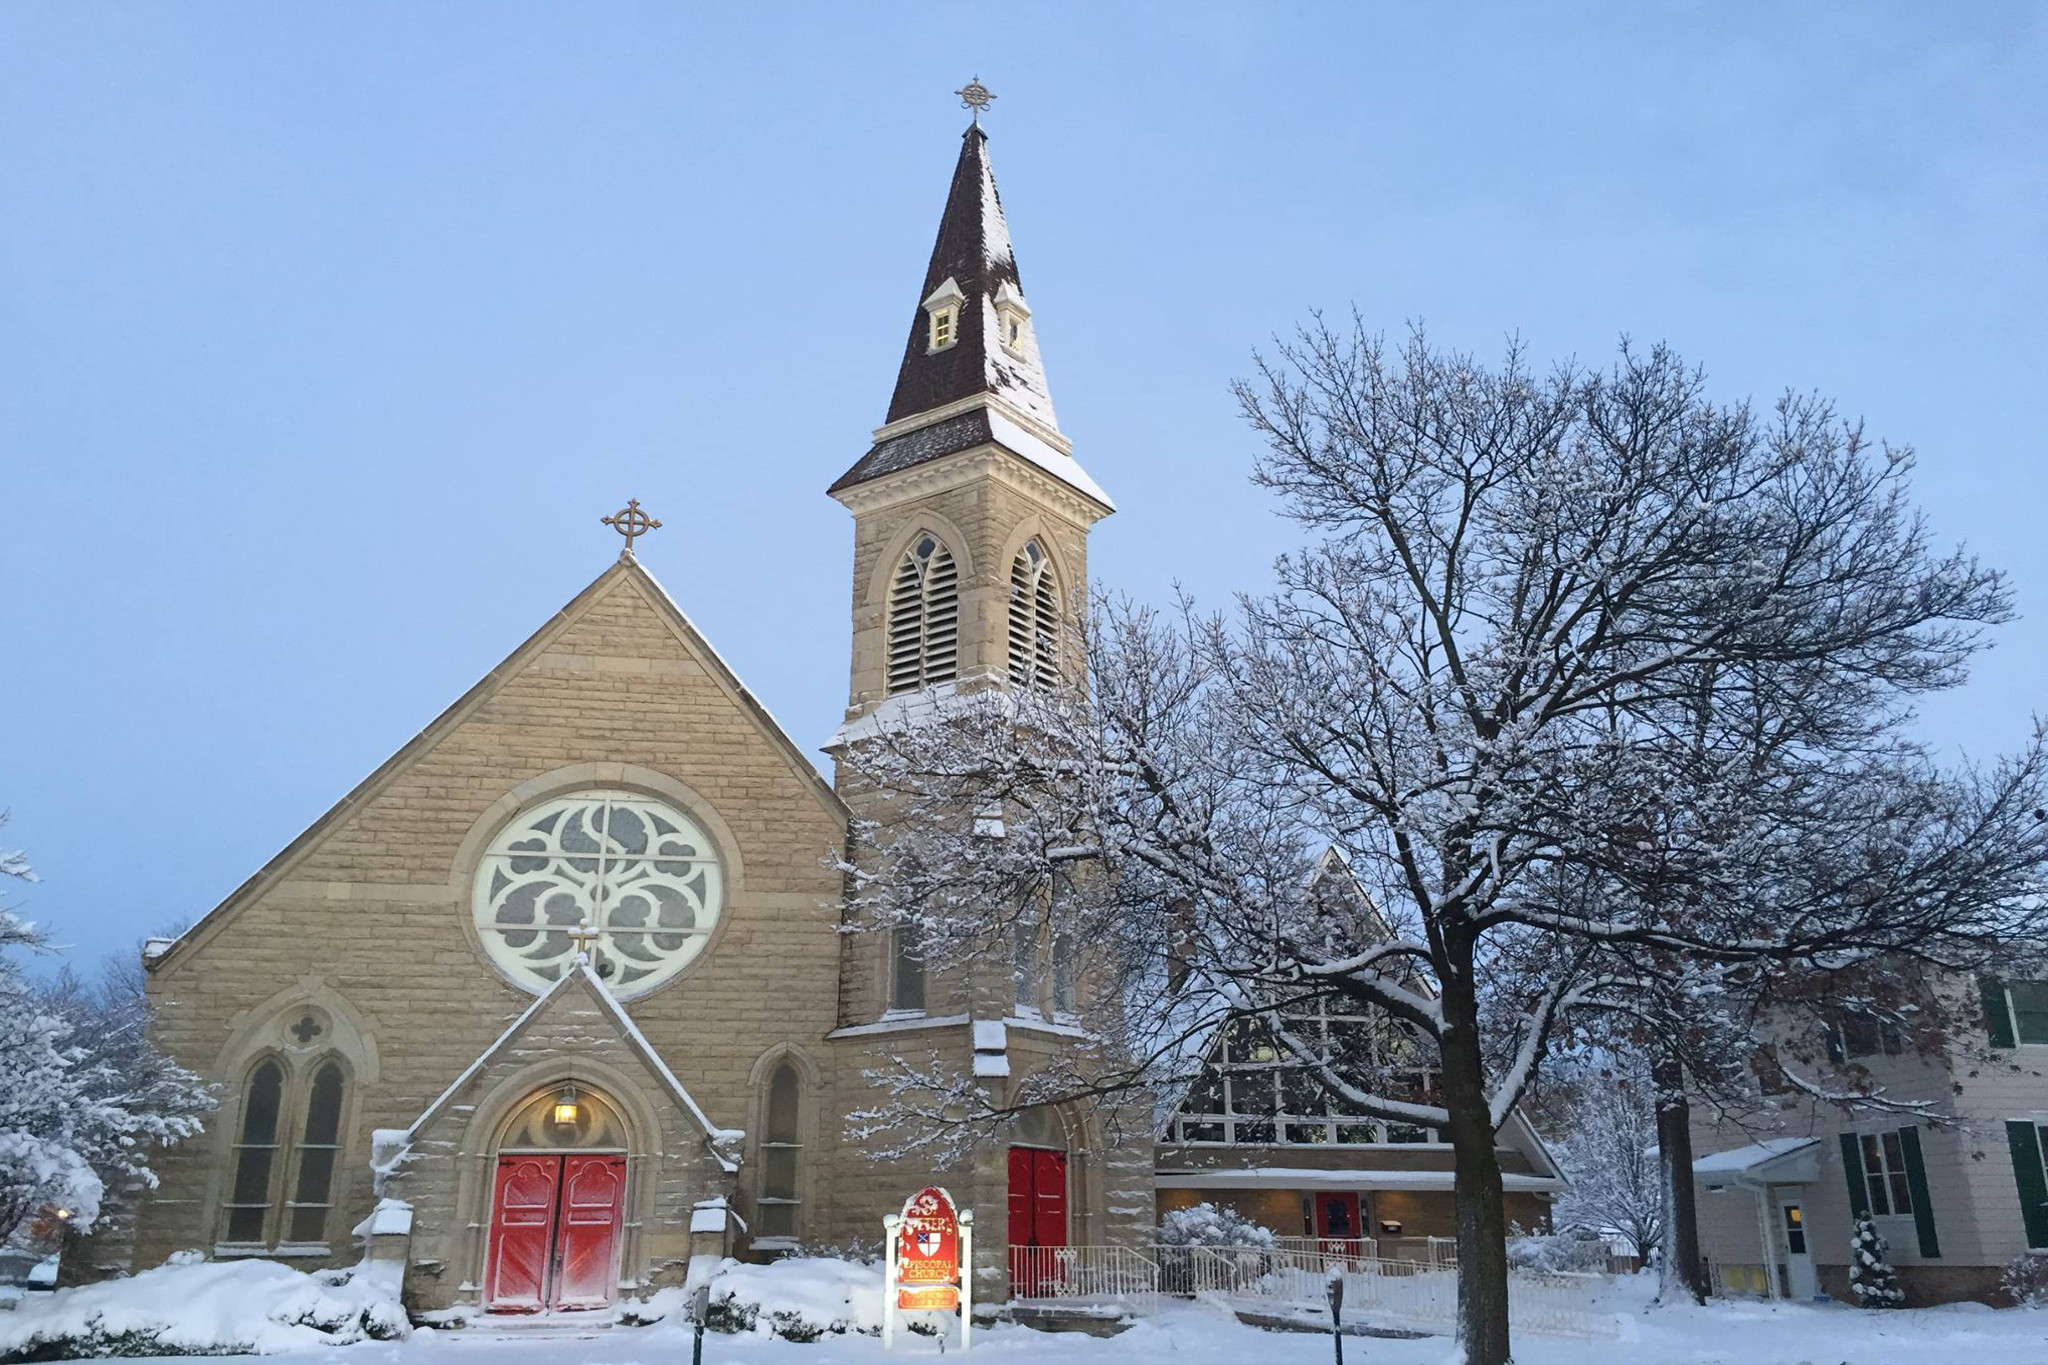 Saint Peter's Episcopal Church Sycamore, IL in the snow